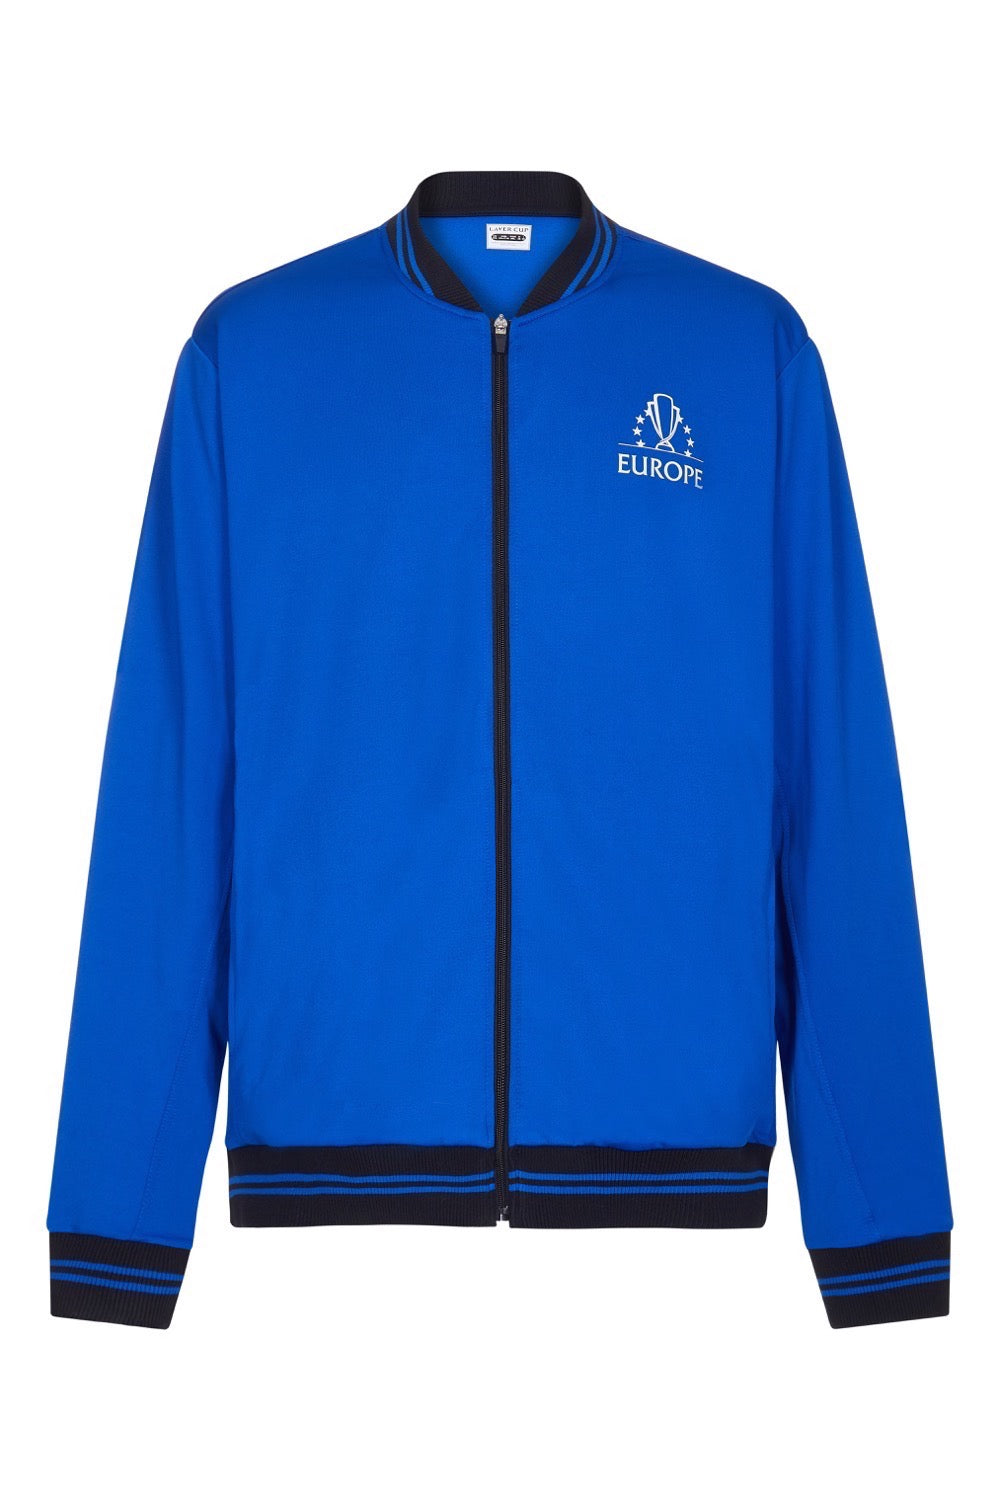 TEAM EUROPE OFFICIAL PLAYER JACKET 2018